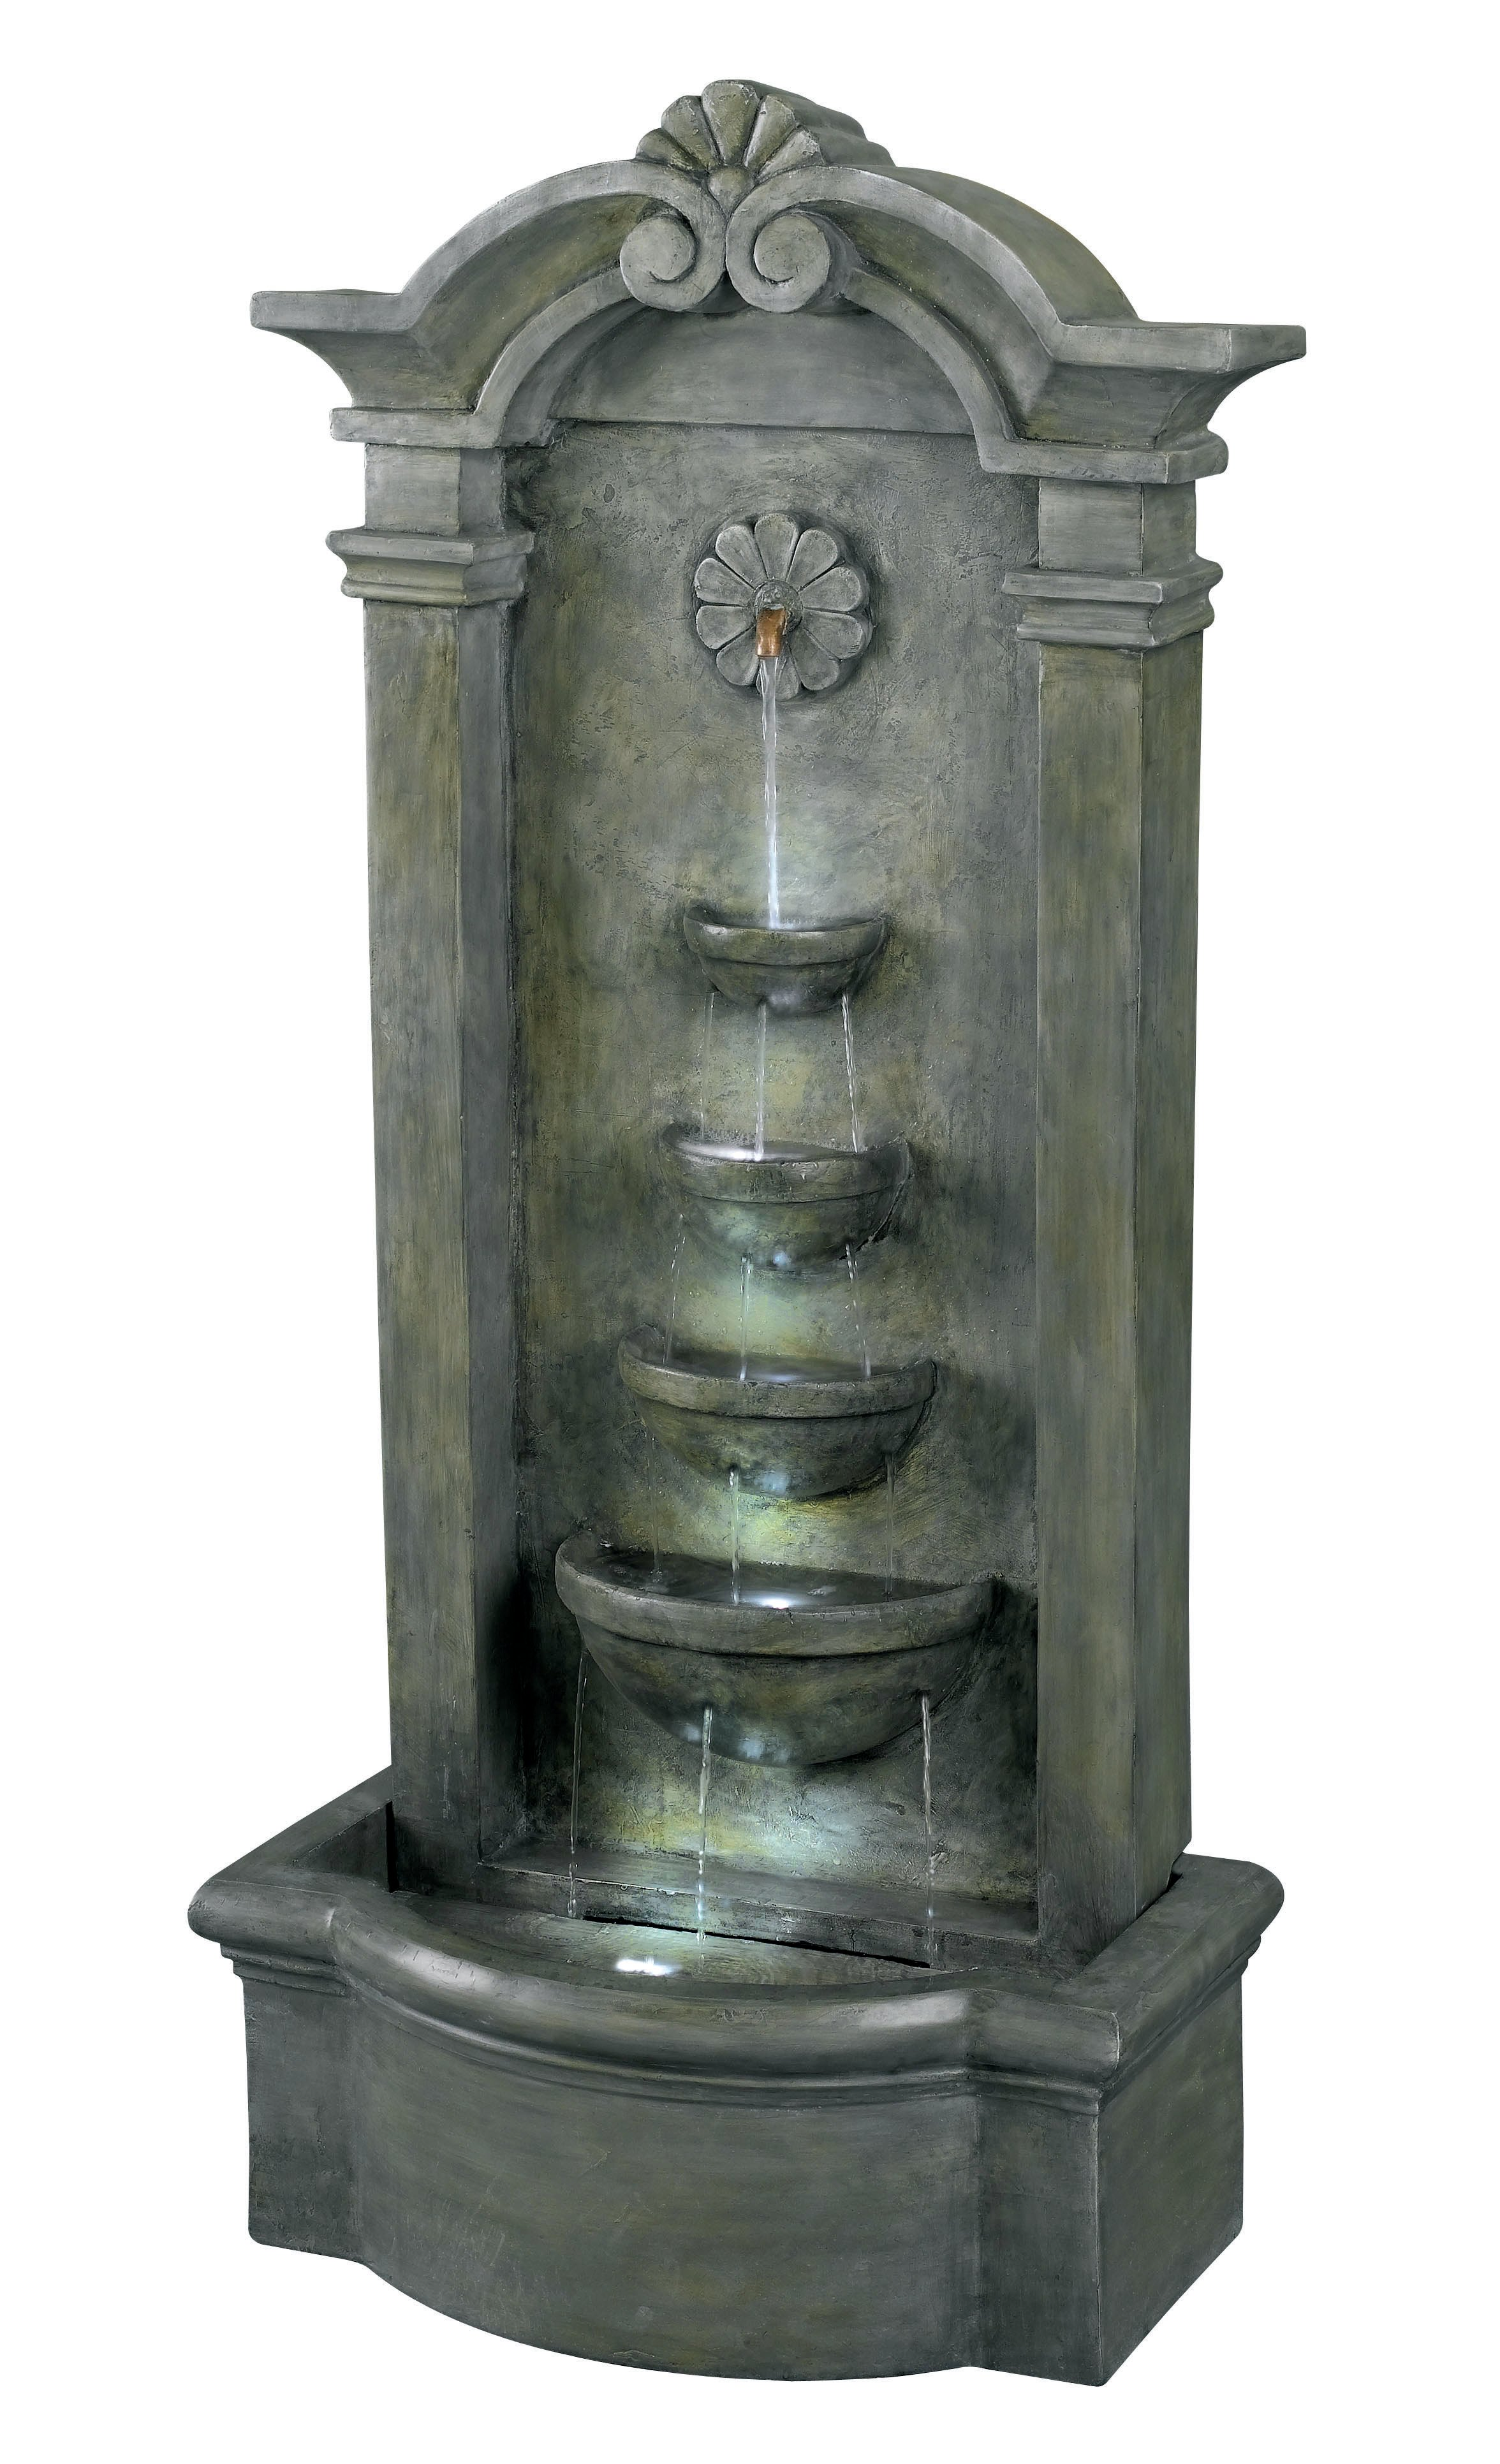 Kenroy Home 53245MS Sienna Floor Fountain- Mossy Stone Finish